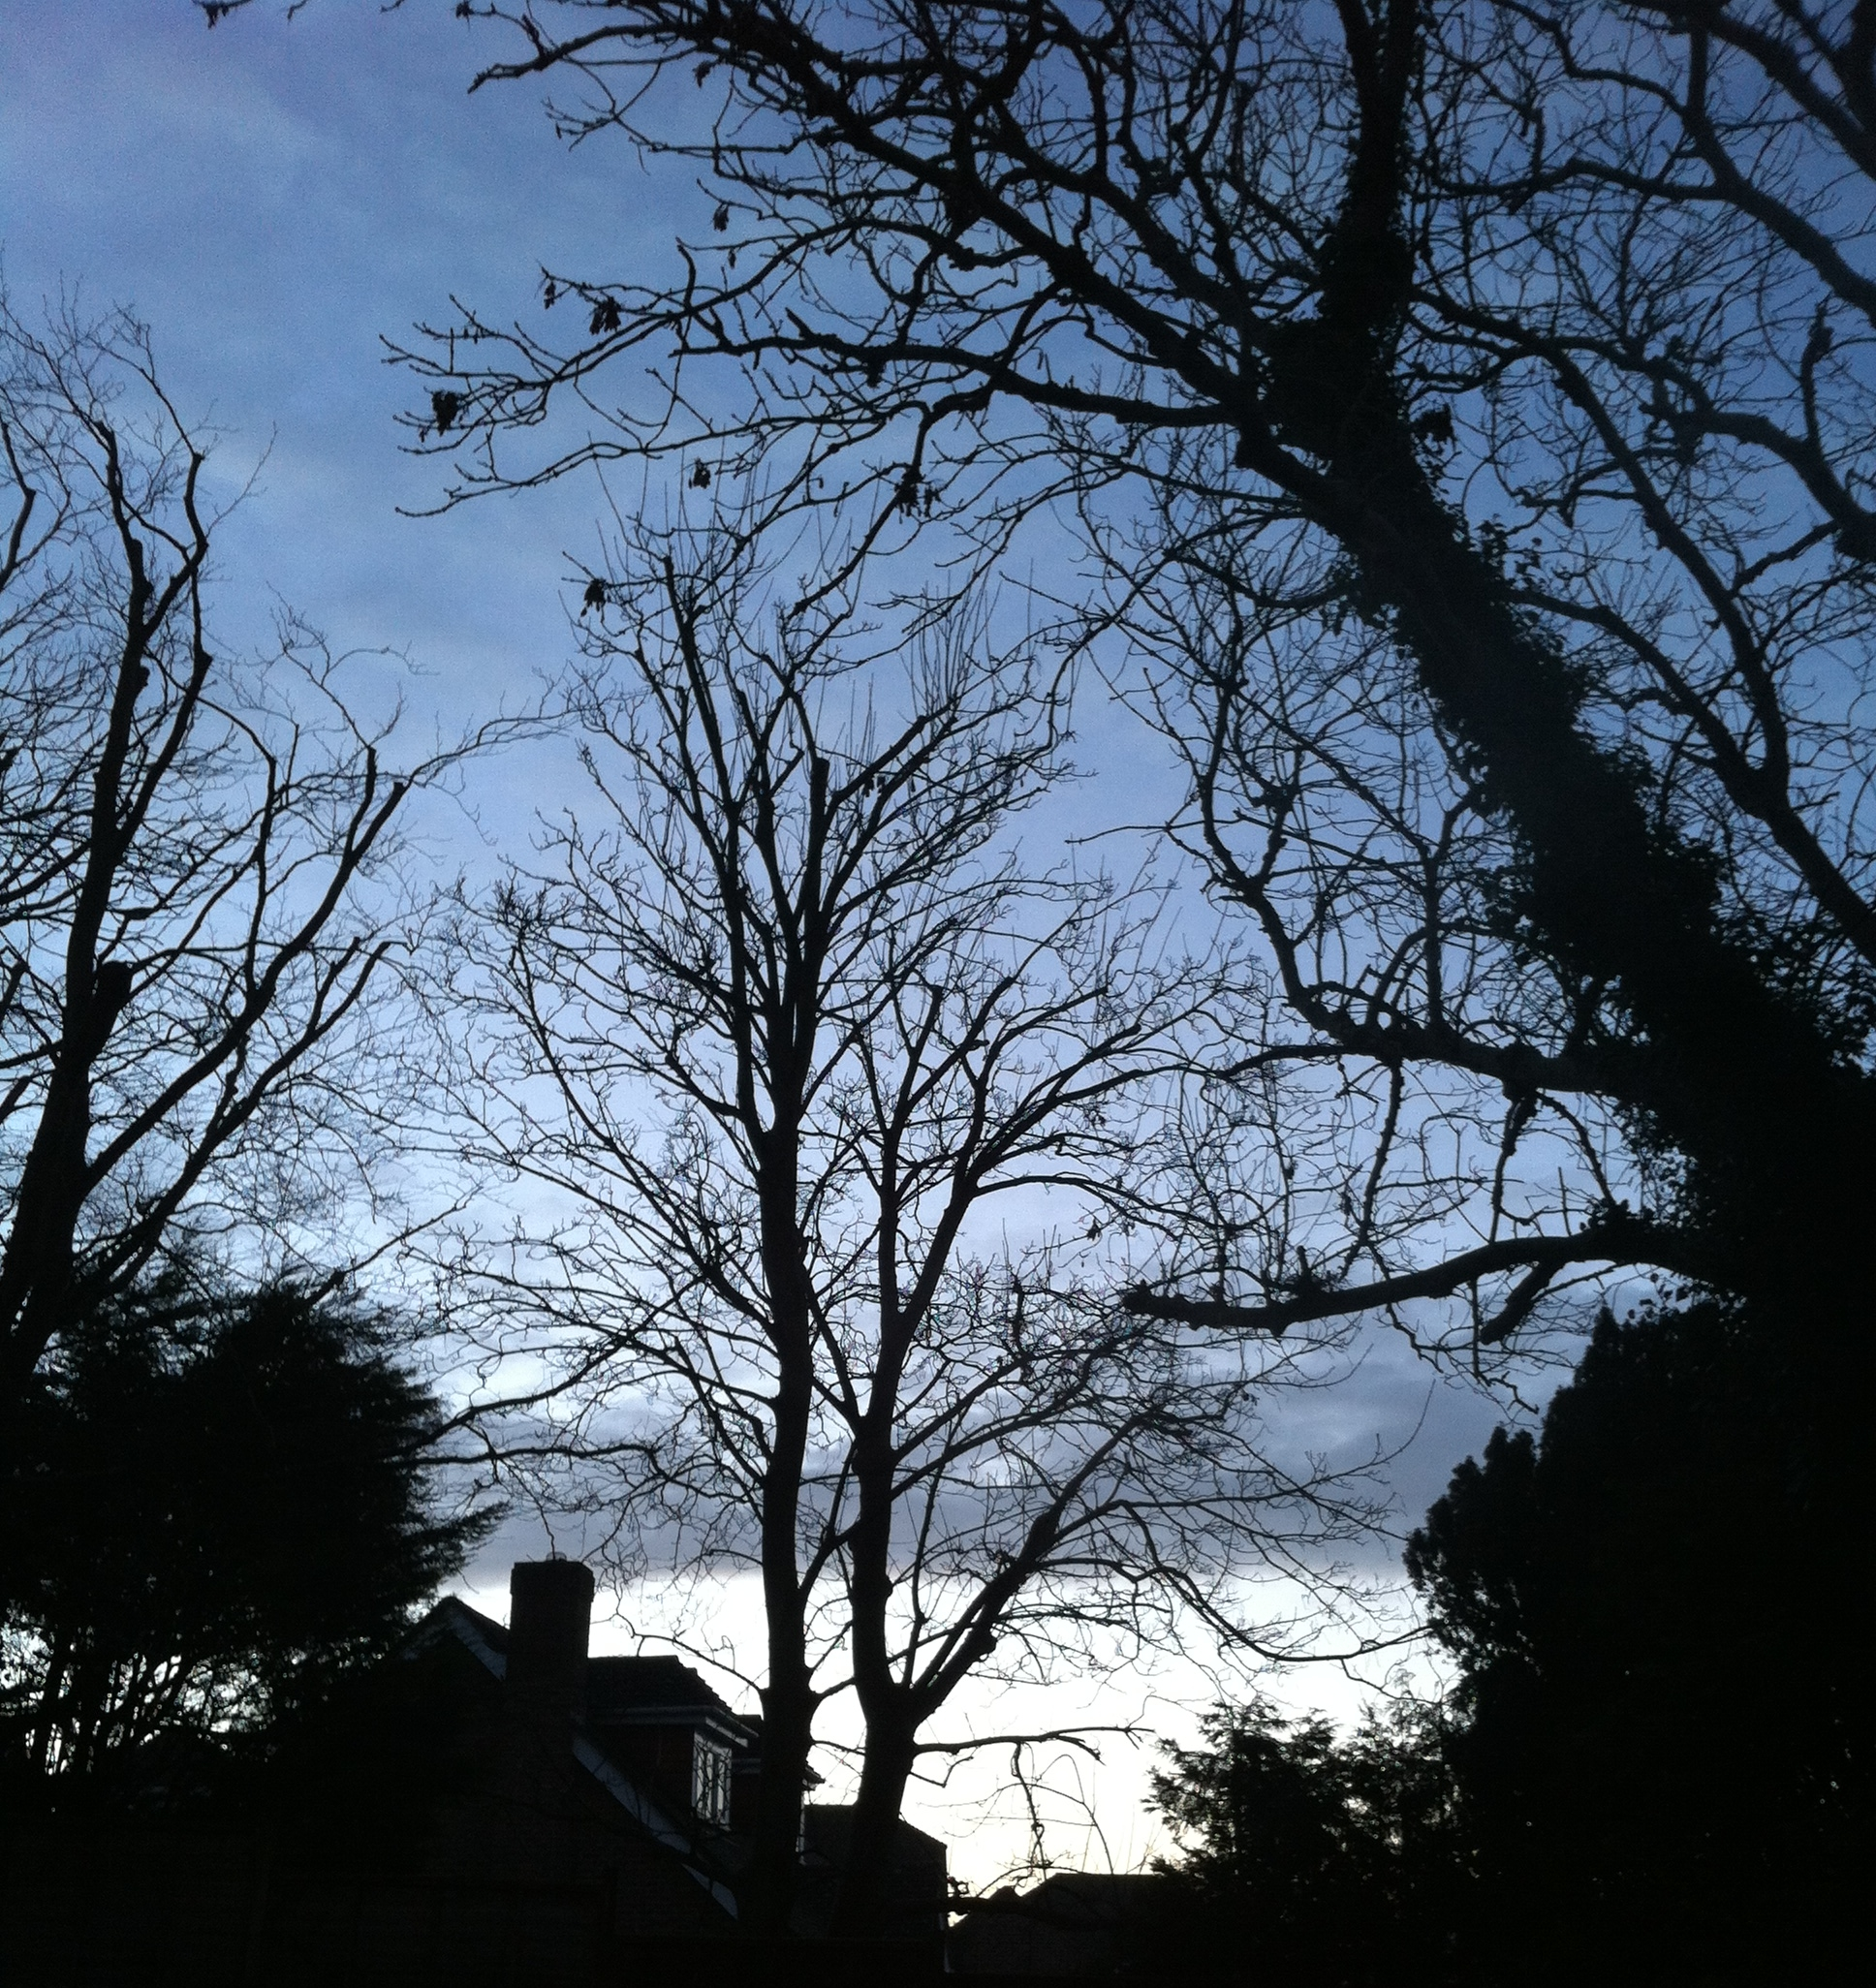 chambray and curls bare branches and dusk sky in winter